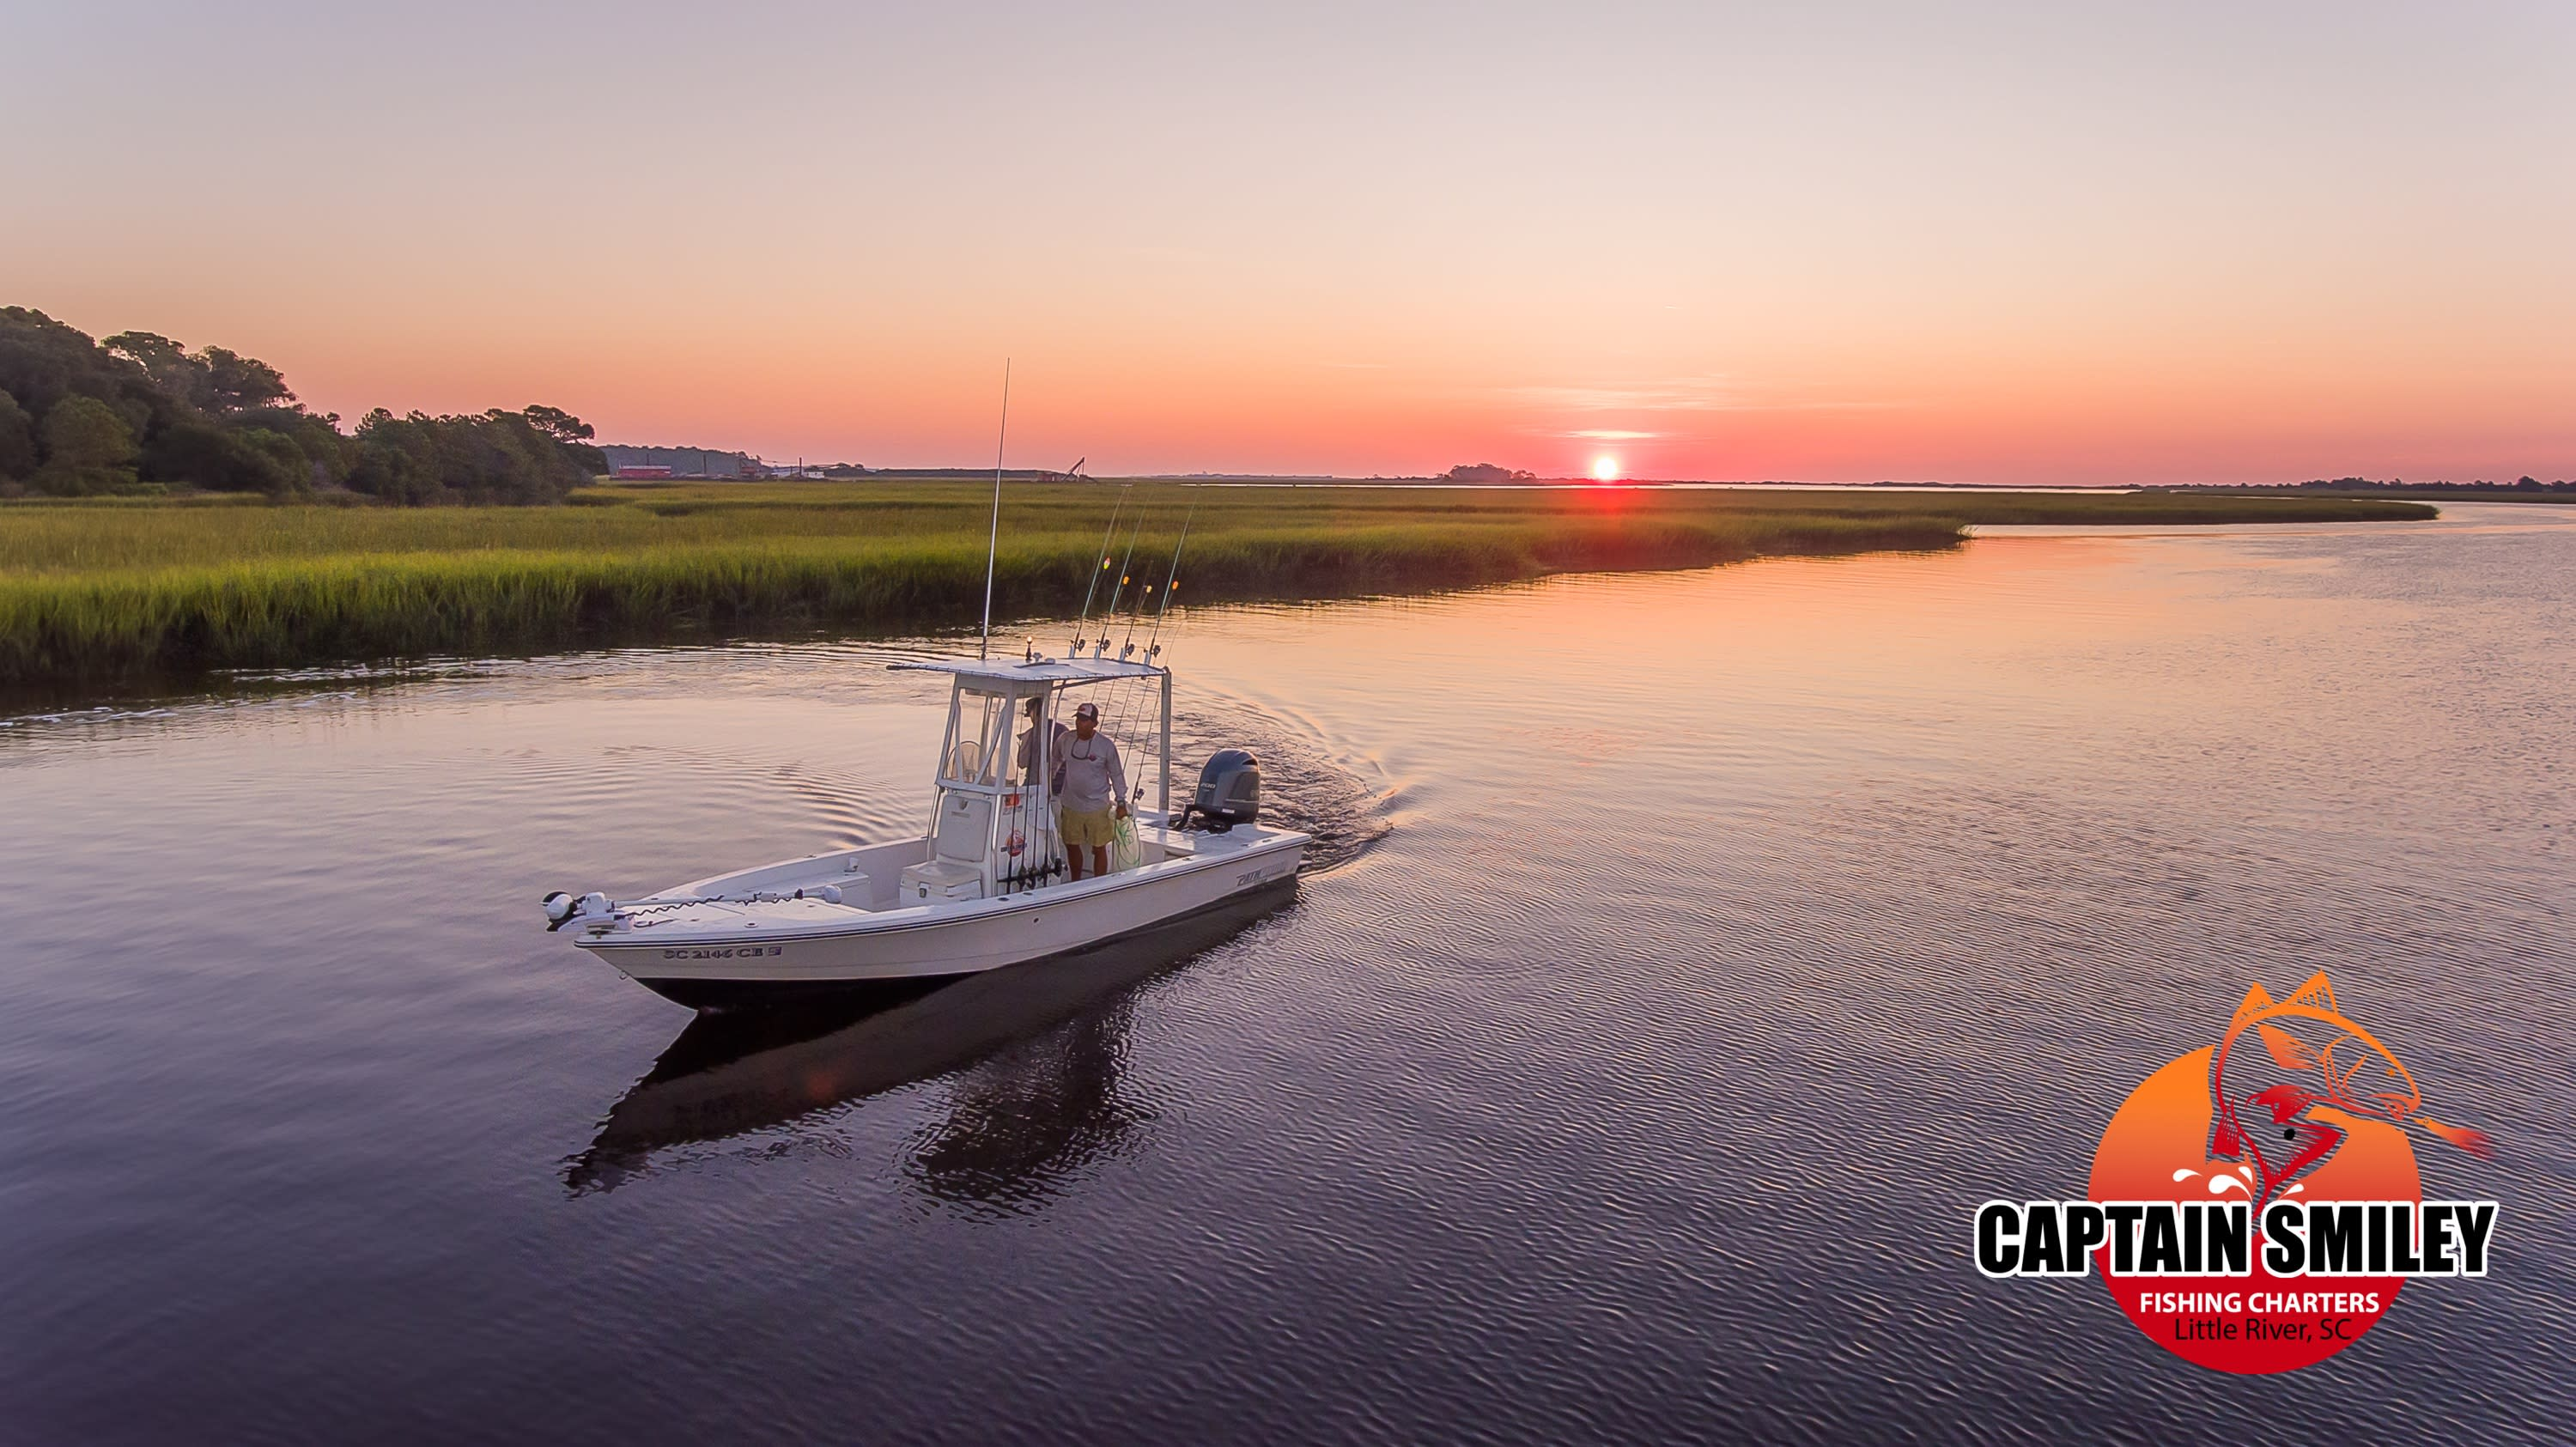 Save $25 on your fishing trip!